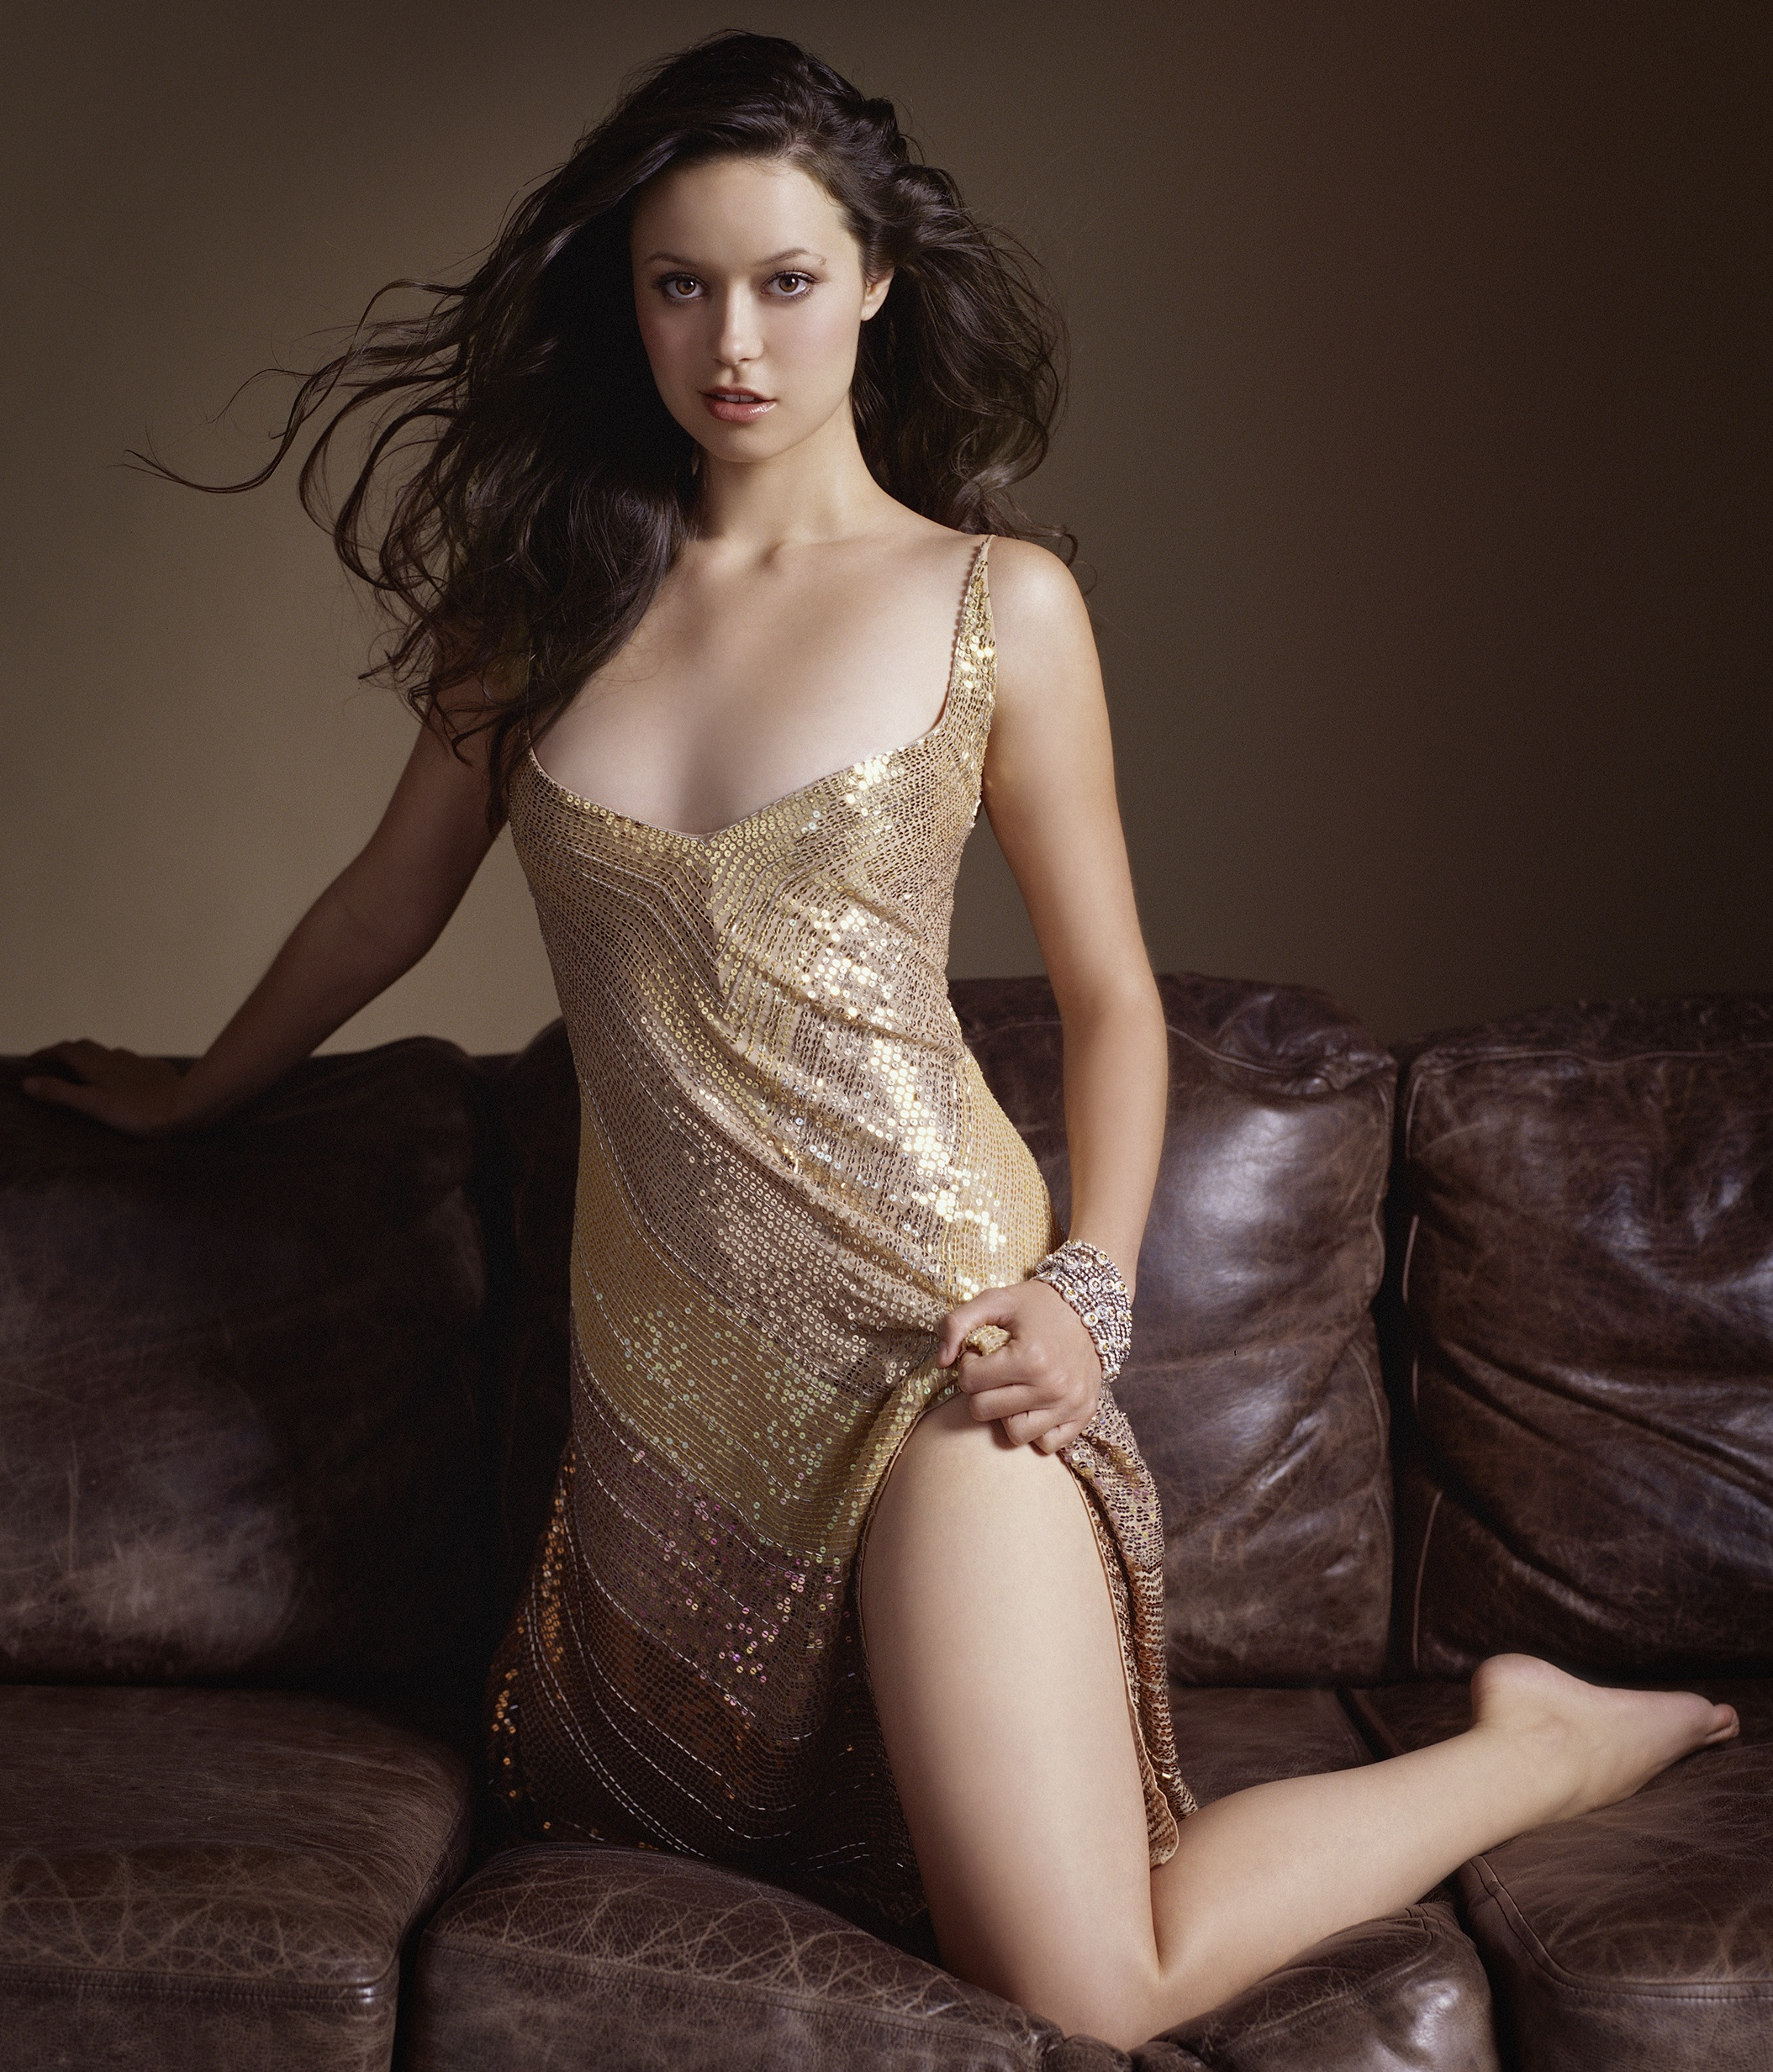 summer glau official website